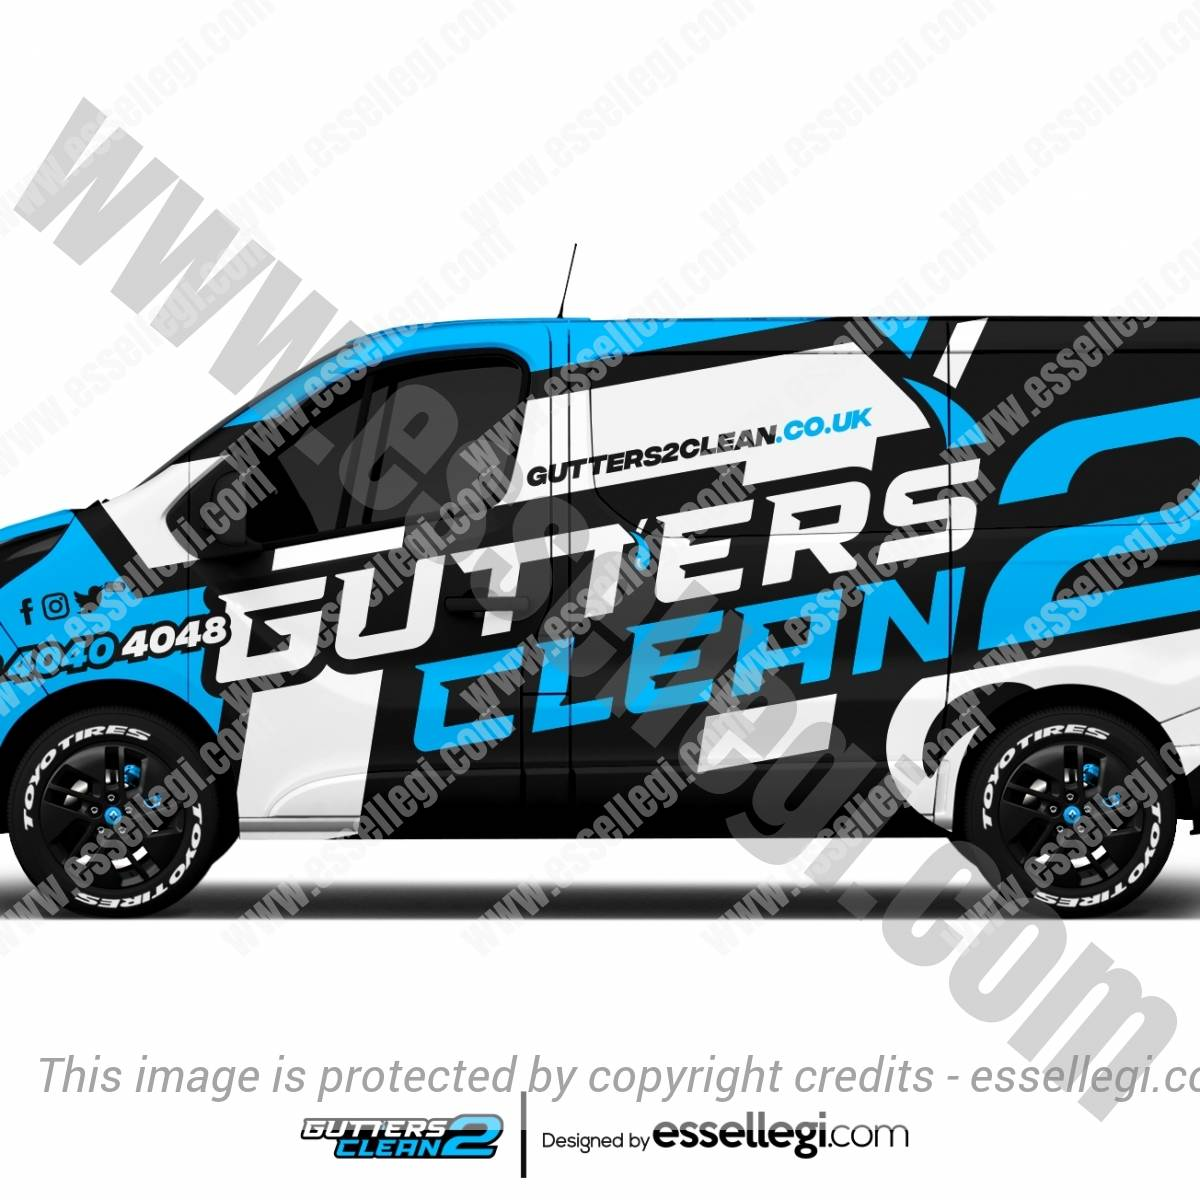 GUTTERS2CLEAN | VAN WRAP DESIGN 🇬🇧